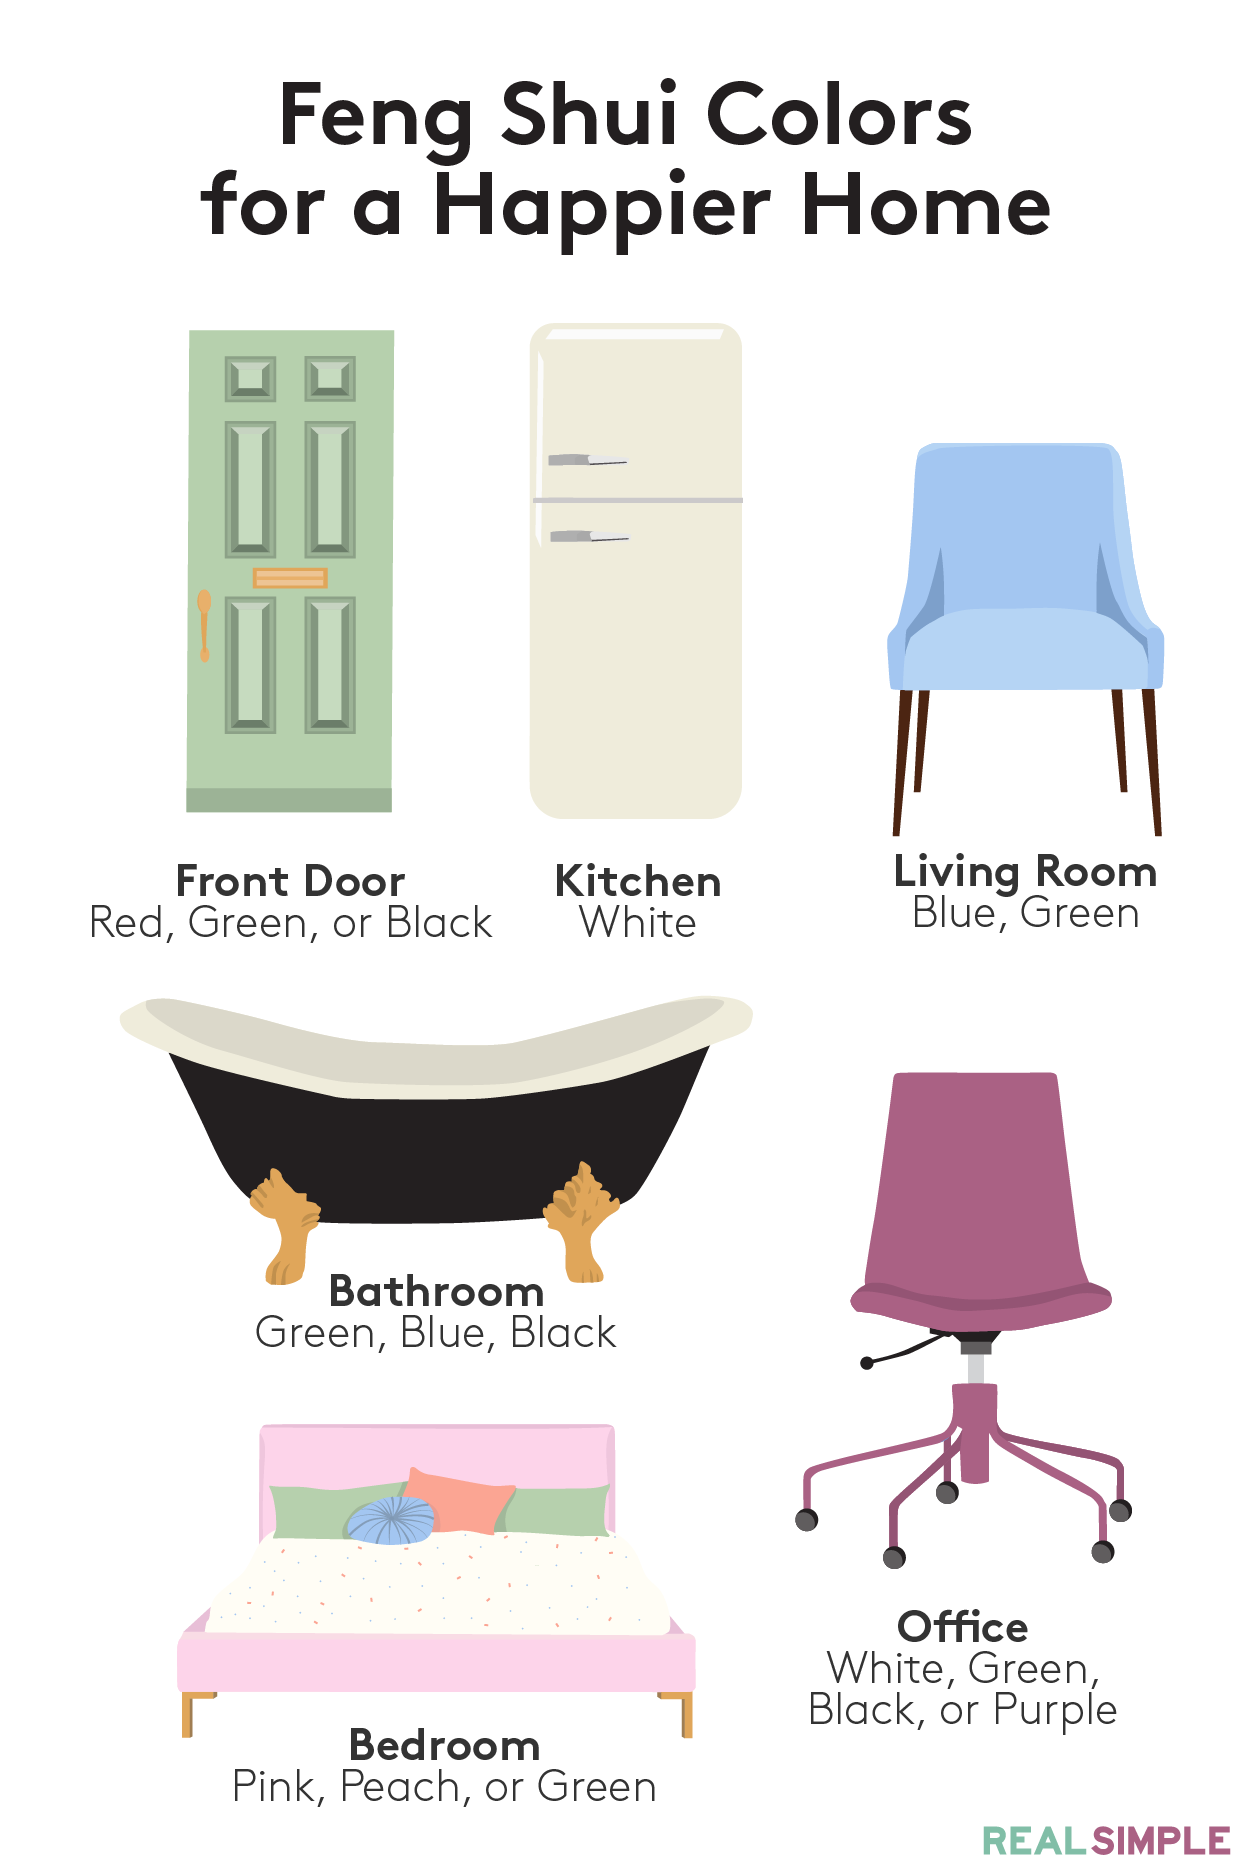 Try These Feng Shui Colors for a Happier Home